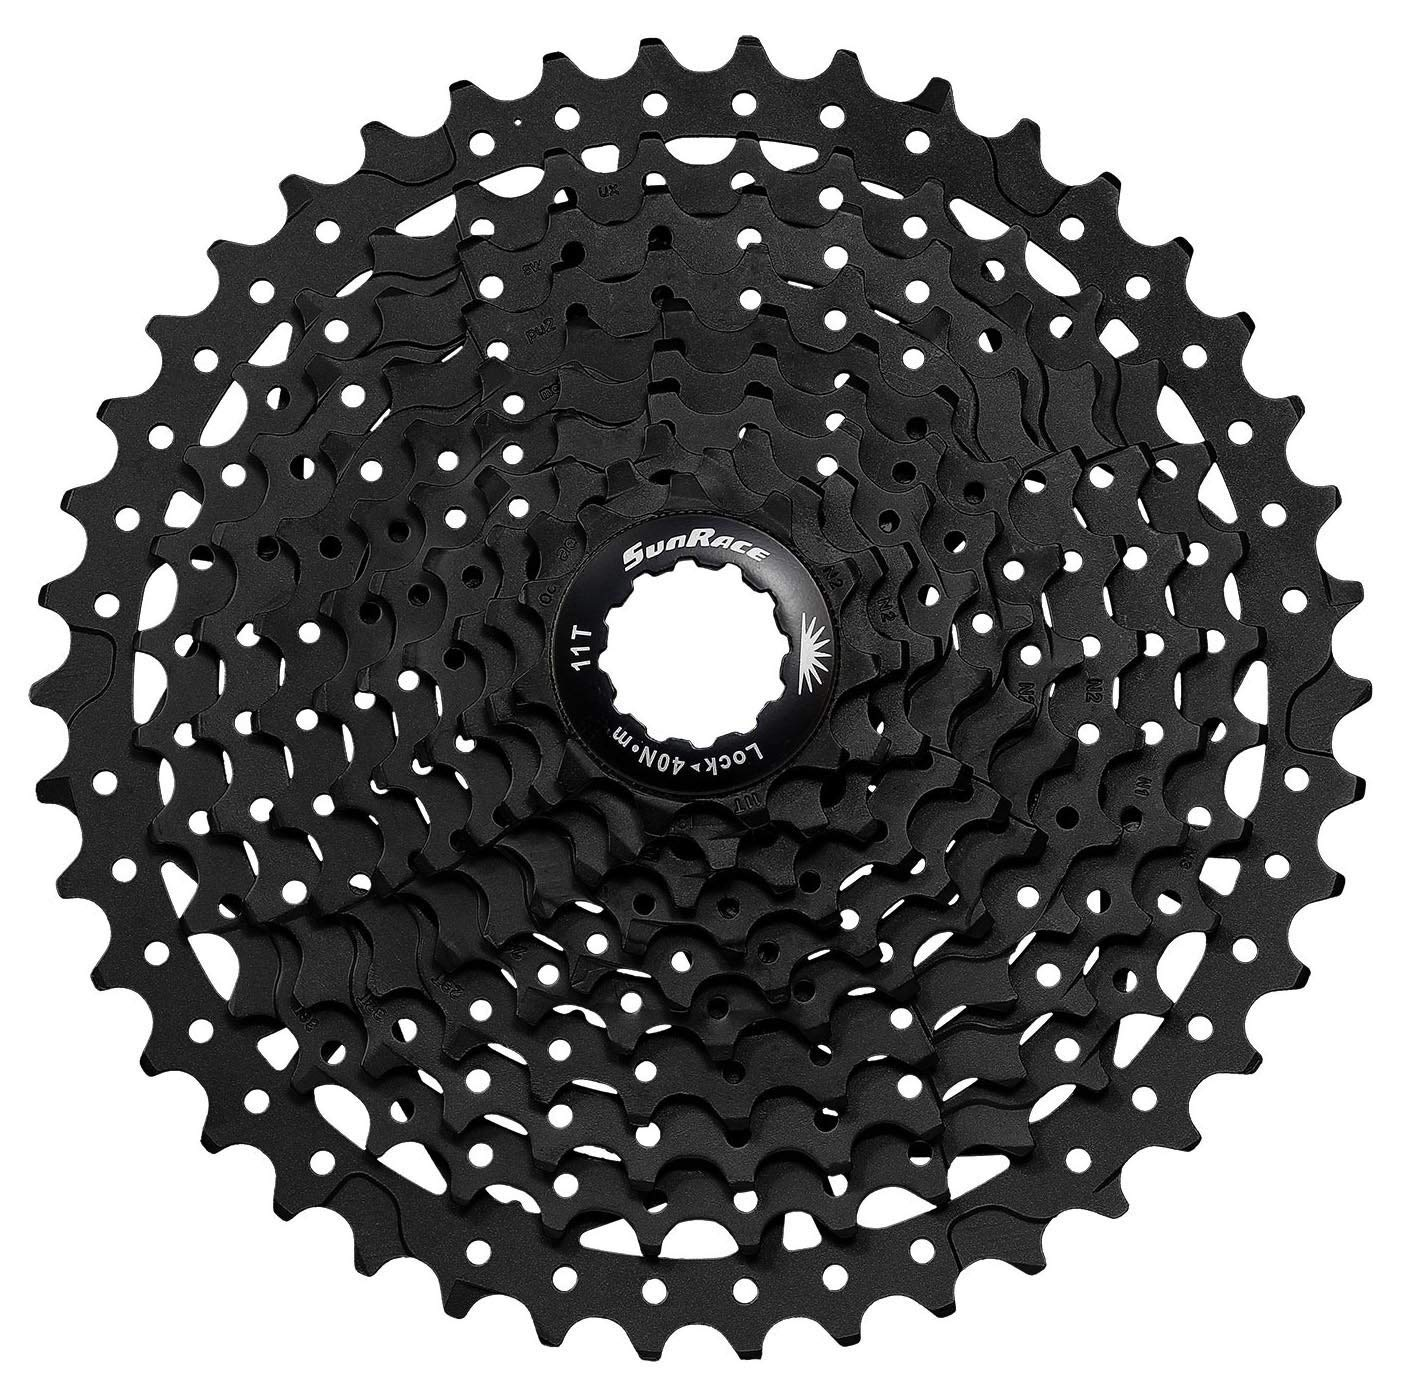 SunRace MS3 10 Speed Mountain Bike Bicycle Cassette Black 11-46T by SunRace